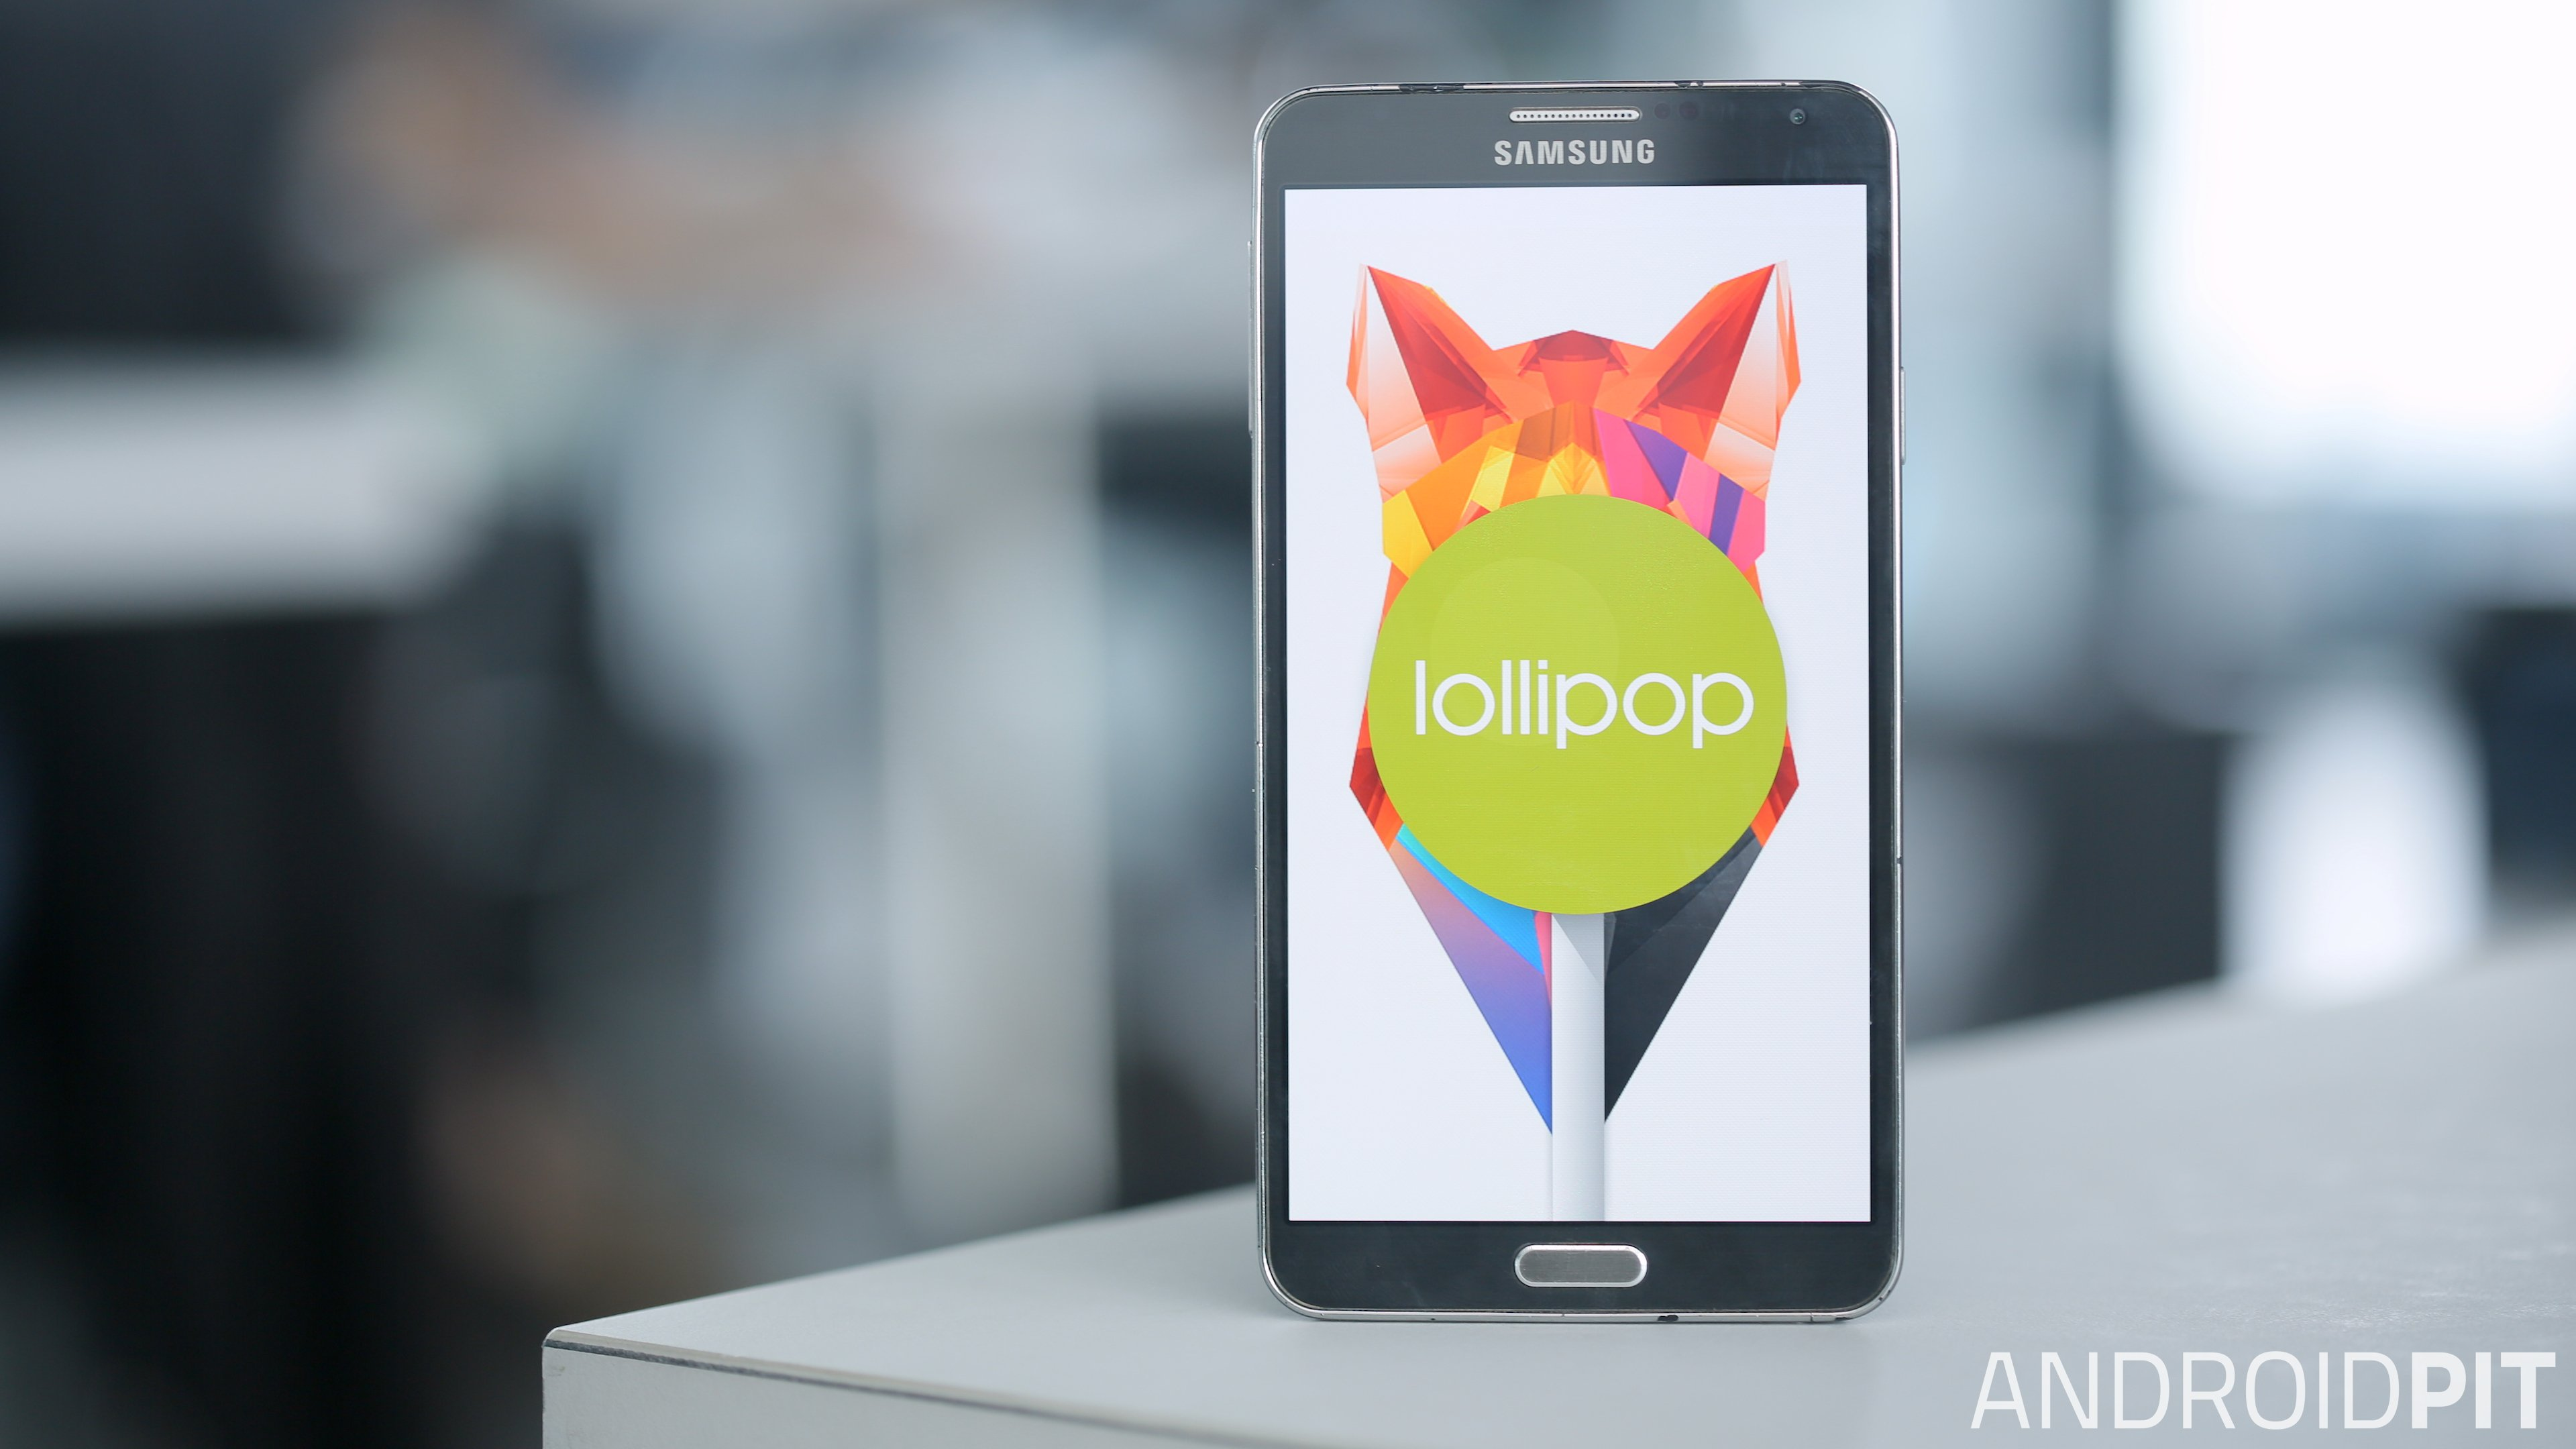 Samsung Galaxy Note 3 Android Update Latest News Androidpit Baterai Original 100